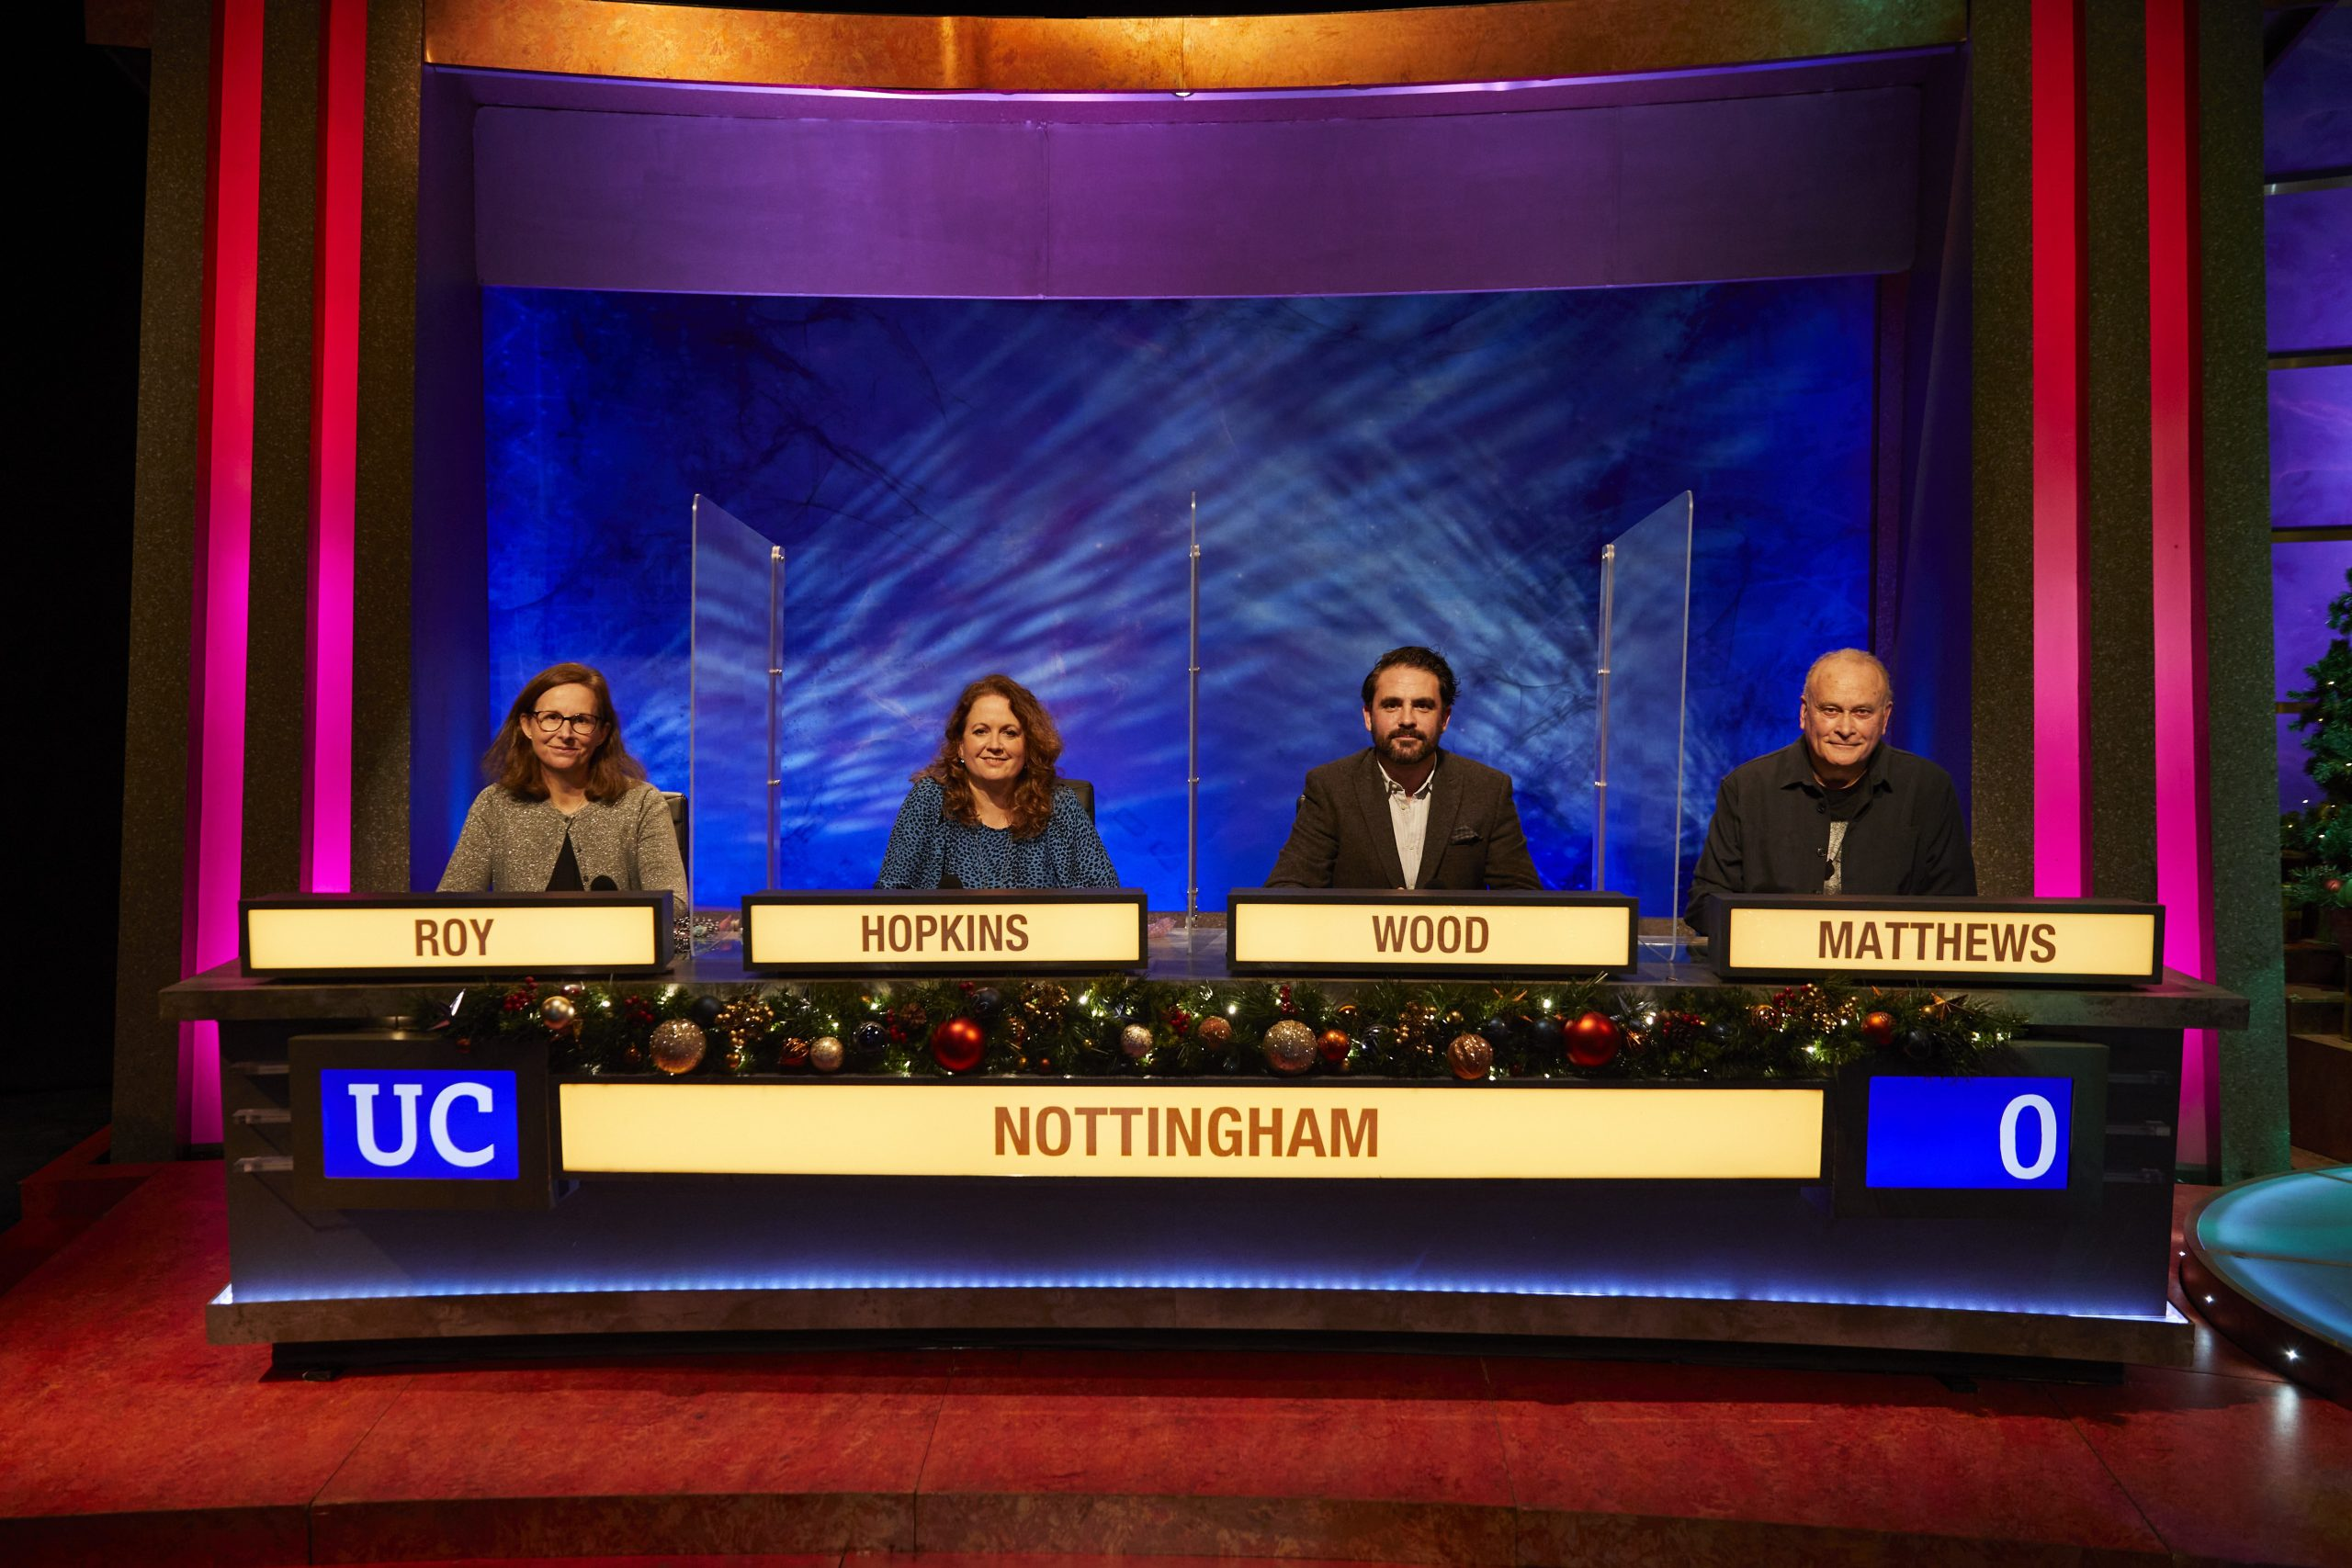 Nottingham University Challenge team - Roy, Hopkins, Wood, Matthews